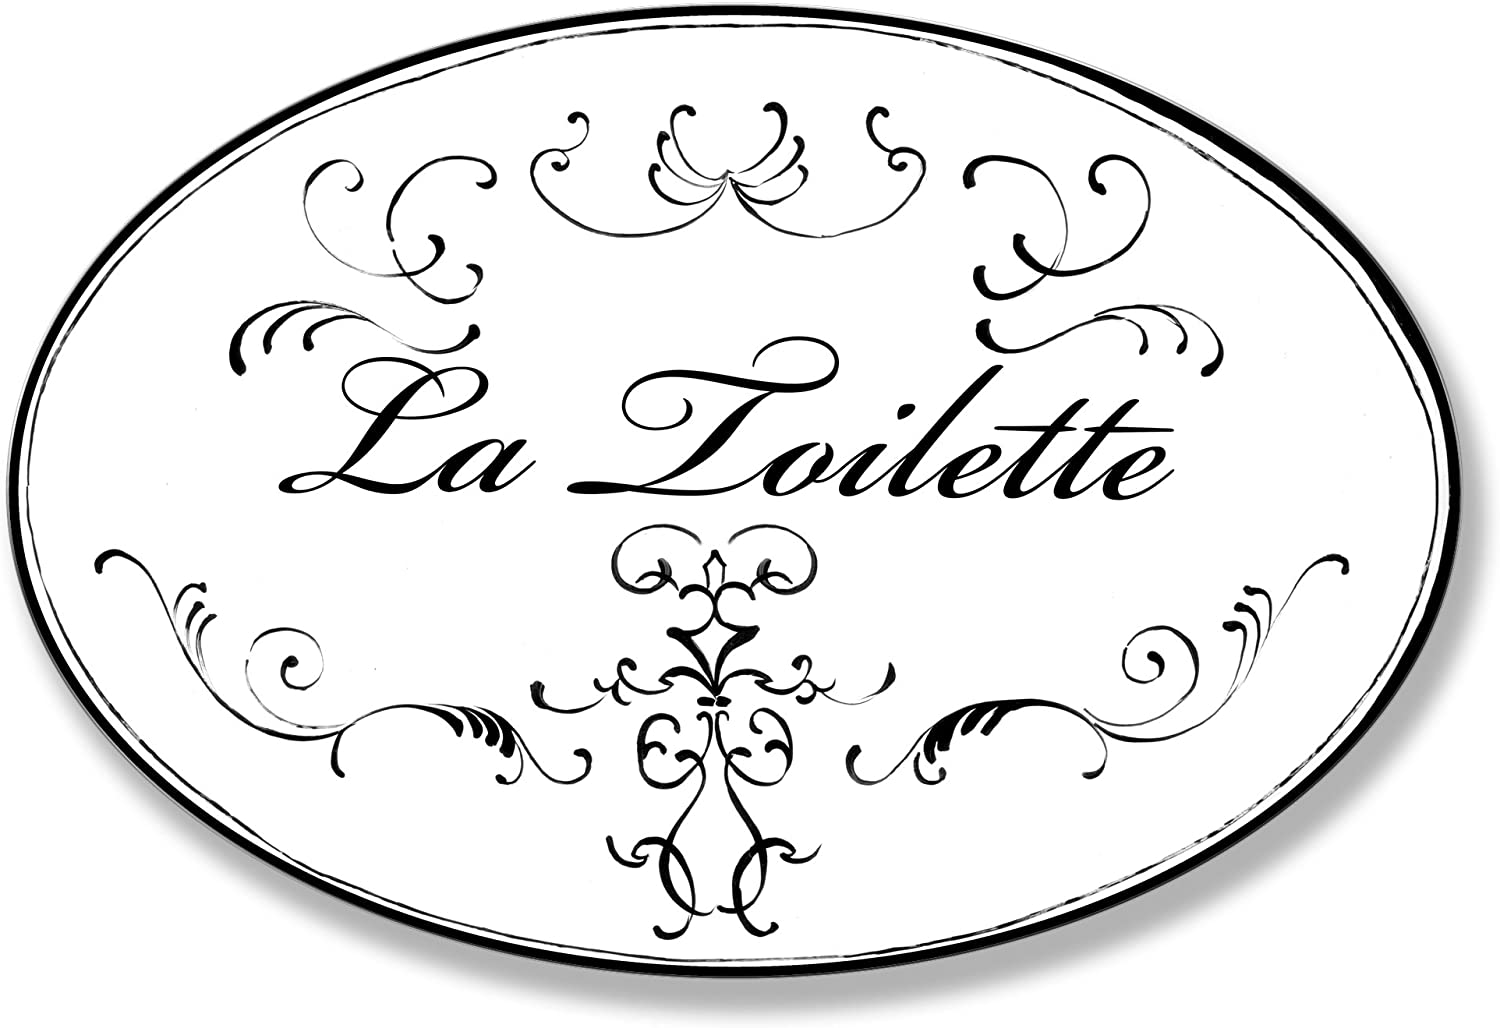 The Stupell Home Décor Collection La Toilette White With Black Scrolls Oval Bathroom Wall Plaque, 10 x 0.5 x 15, Proudly Made in USA - WRP-820